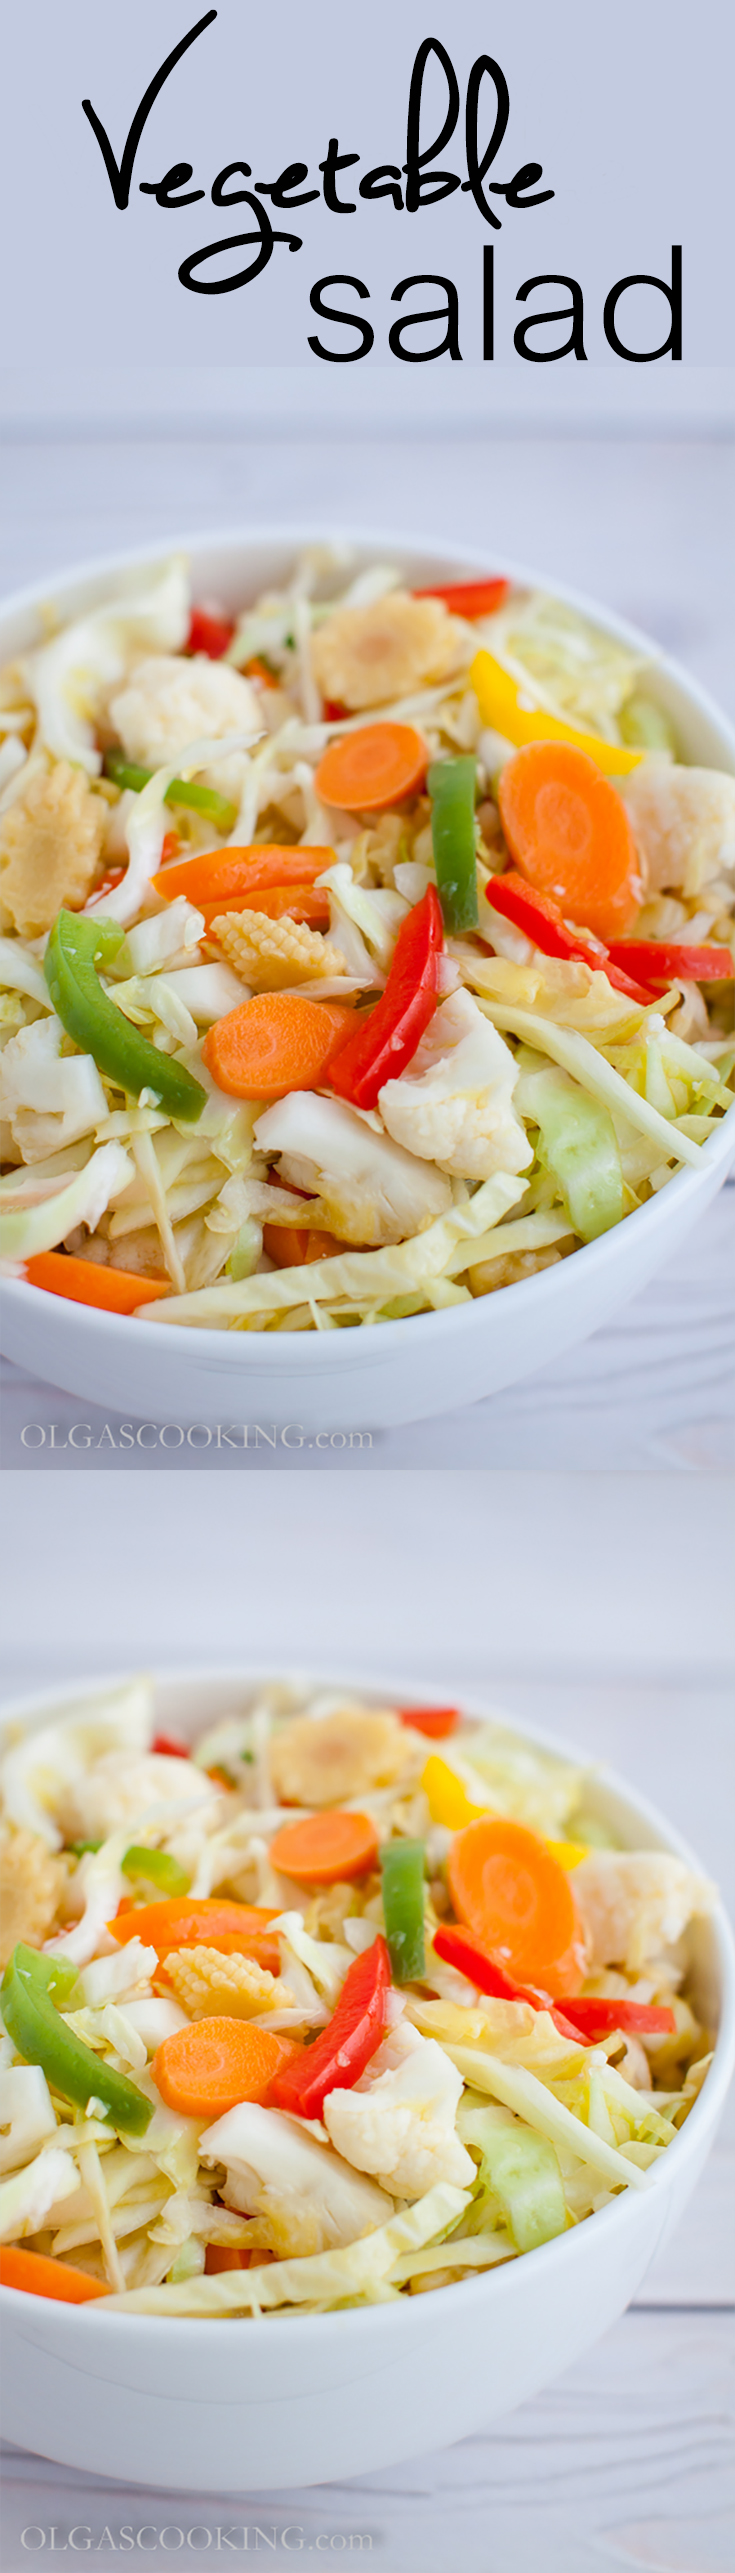 Vegetable Salad with cabbage, bell peppers, baby corn and baby carrots